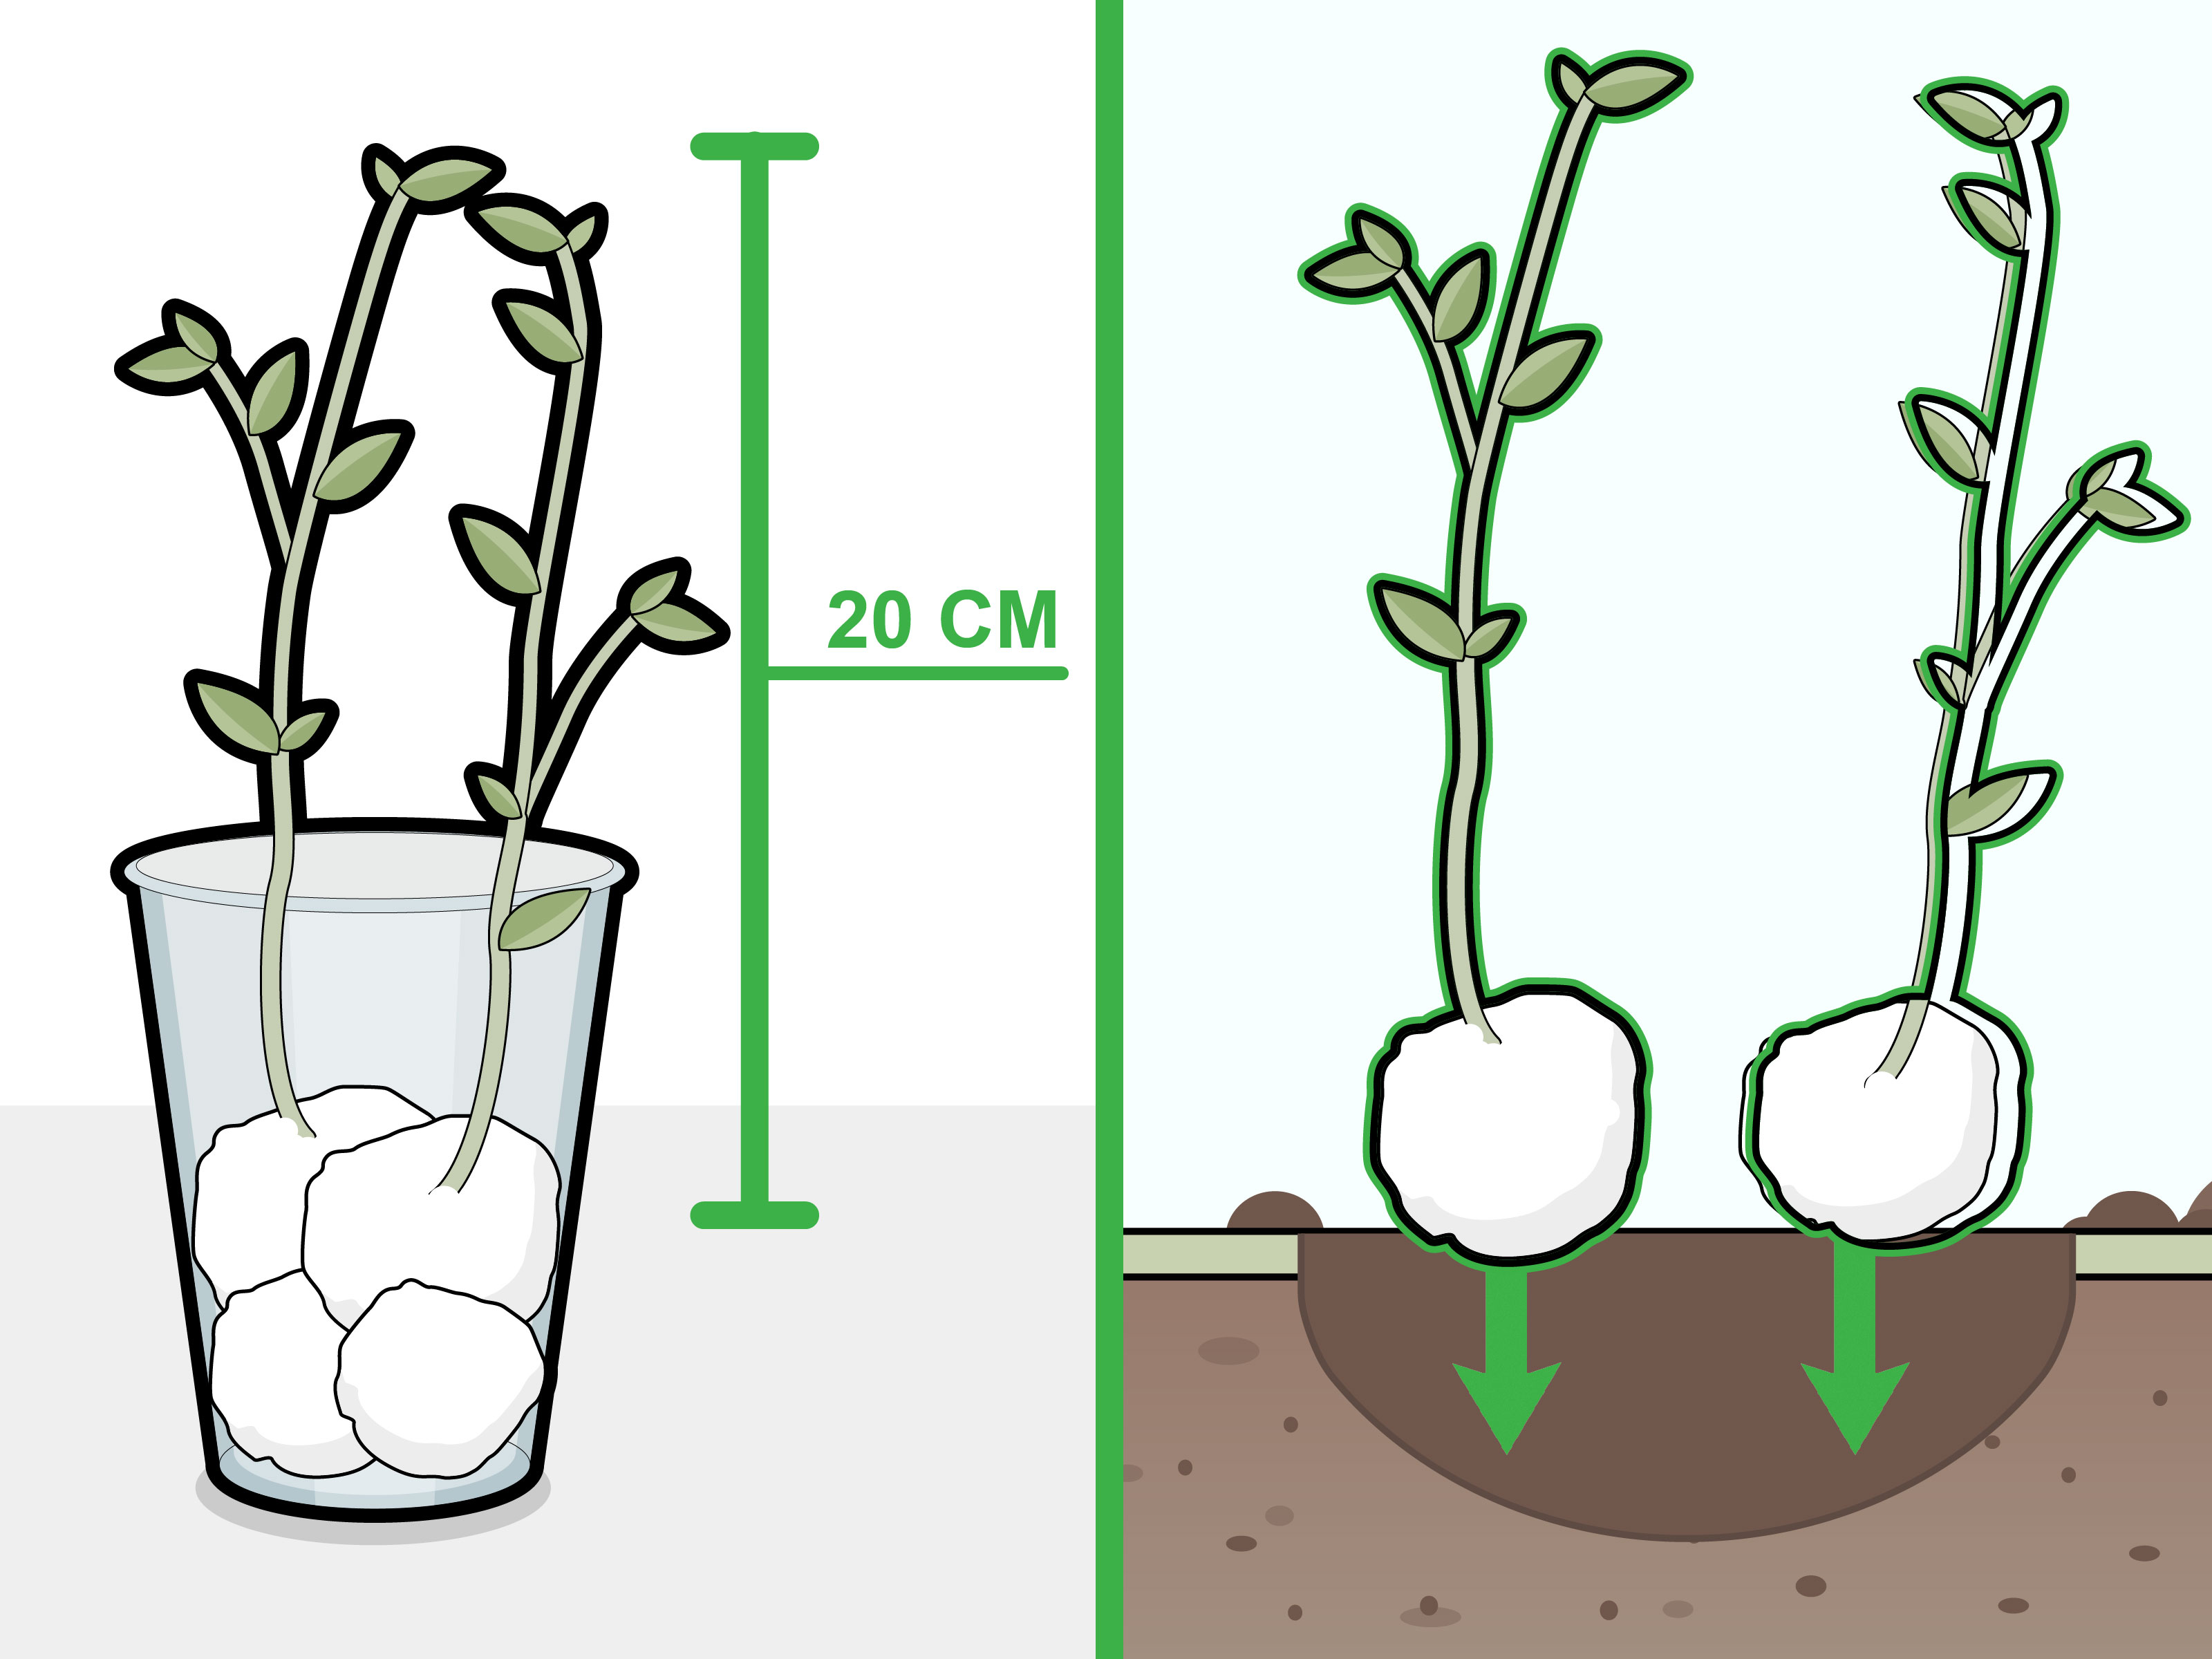 How To Grow Beans In Cotton 6 Steps With Pictures